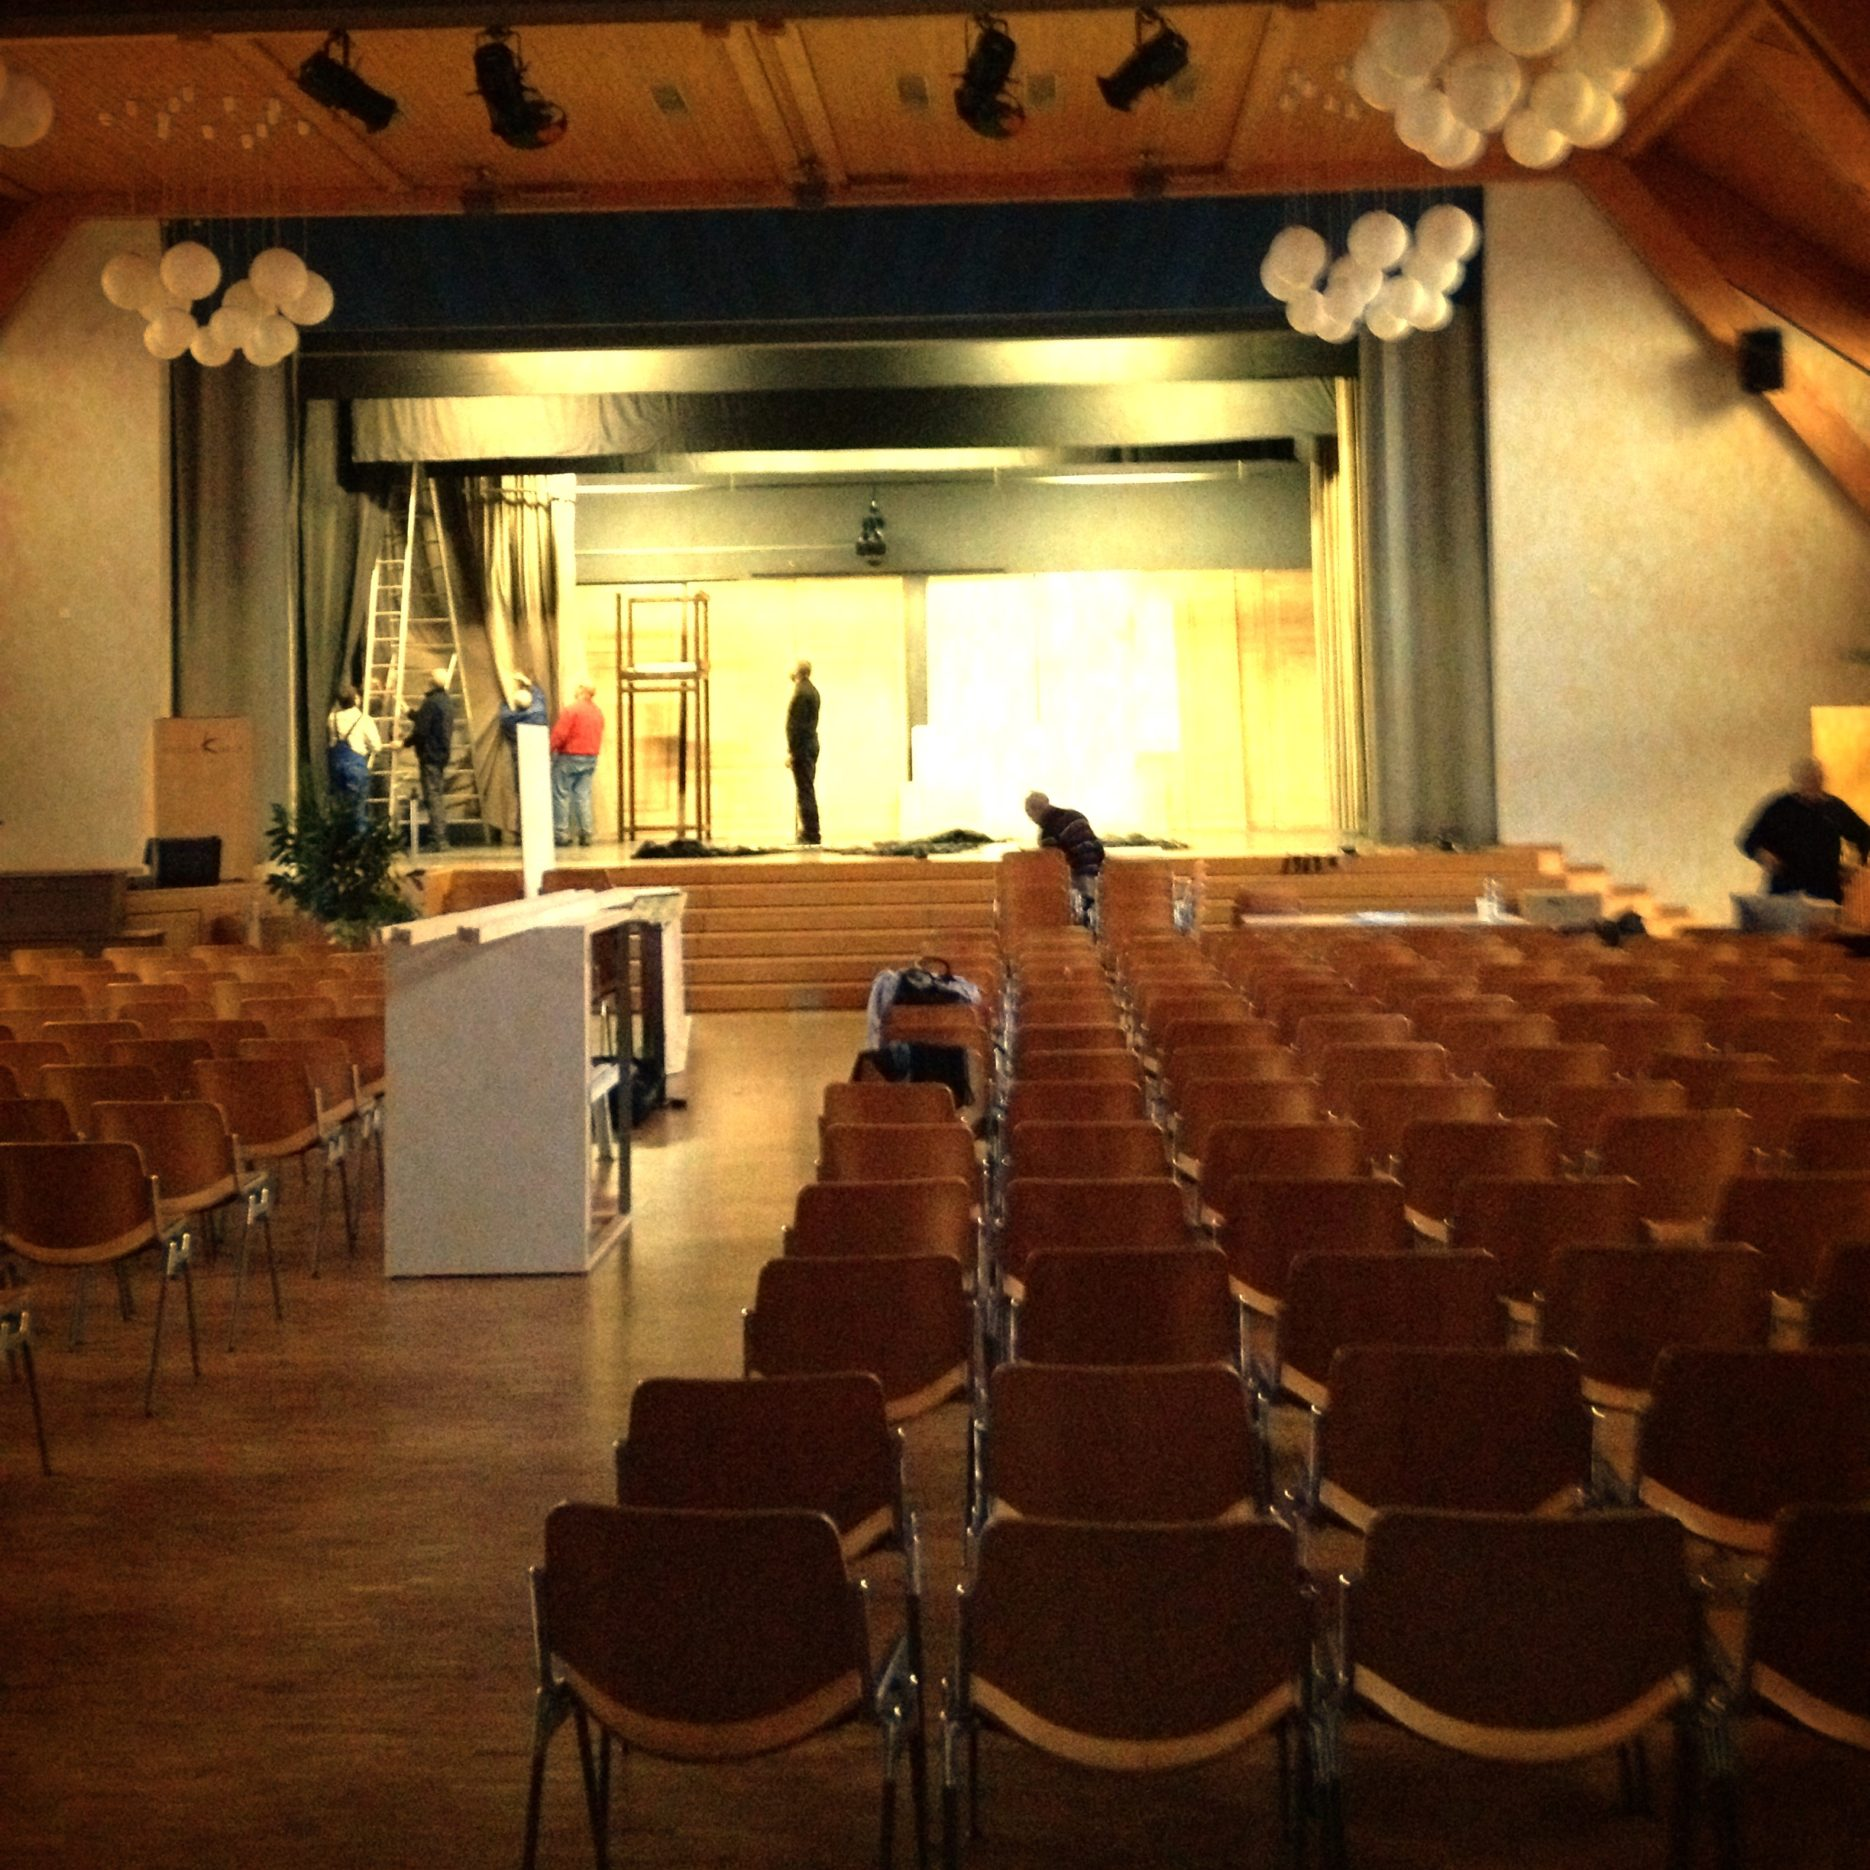 01.07.13 Theater Belp Preparing The Stage